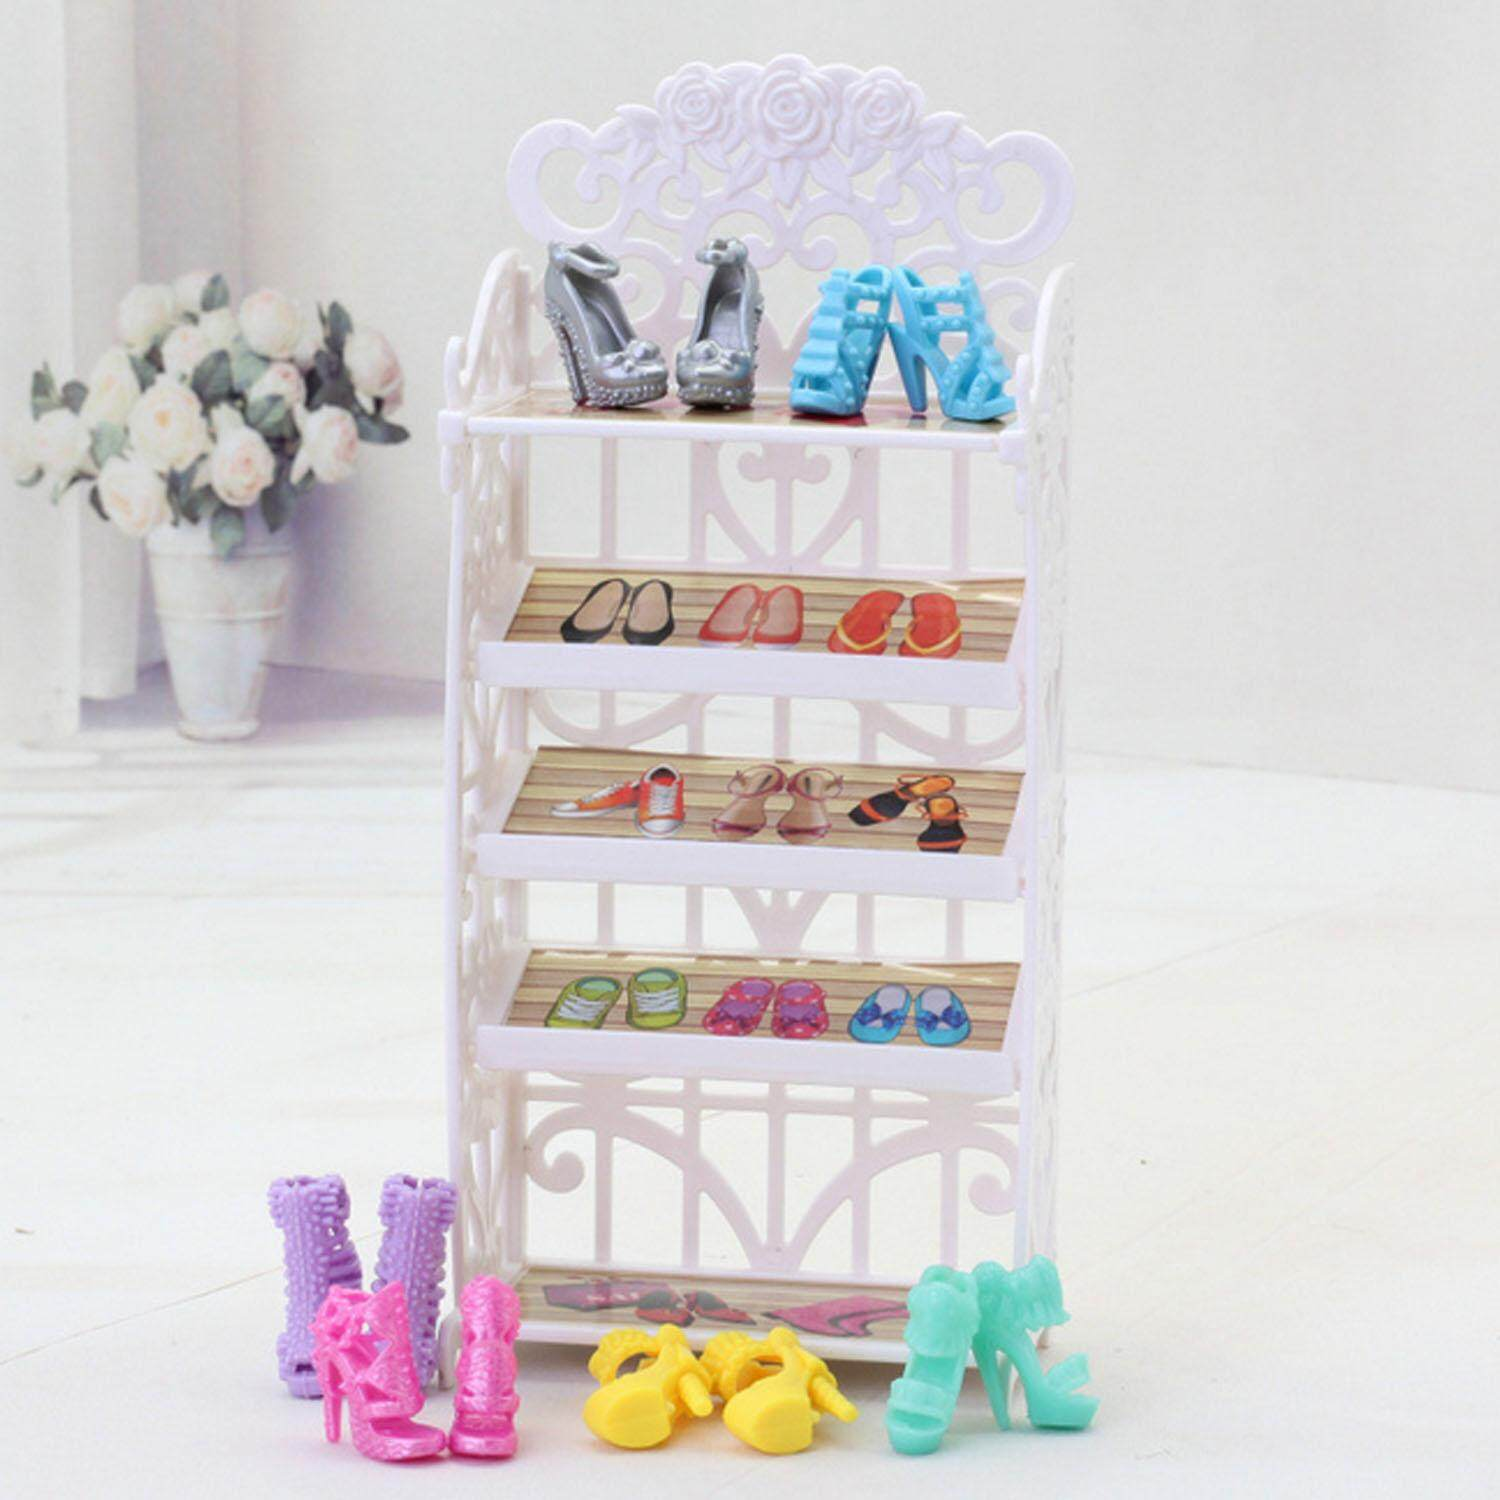 Doll Shoes Rack Cabinet Furniture Accessories for Barbie Toys Children Kids Girls Birthday Xmas Gift - intl